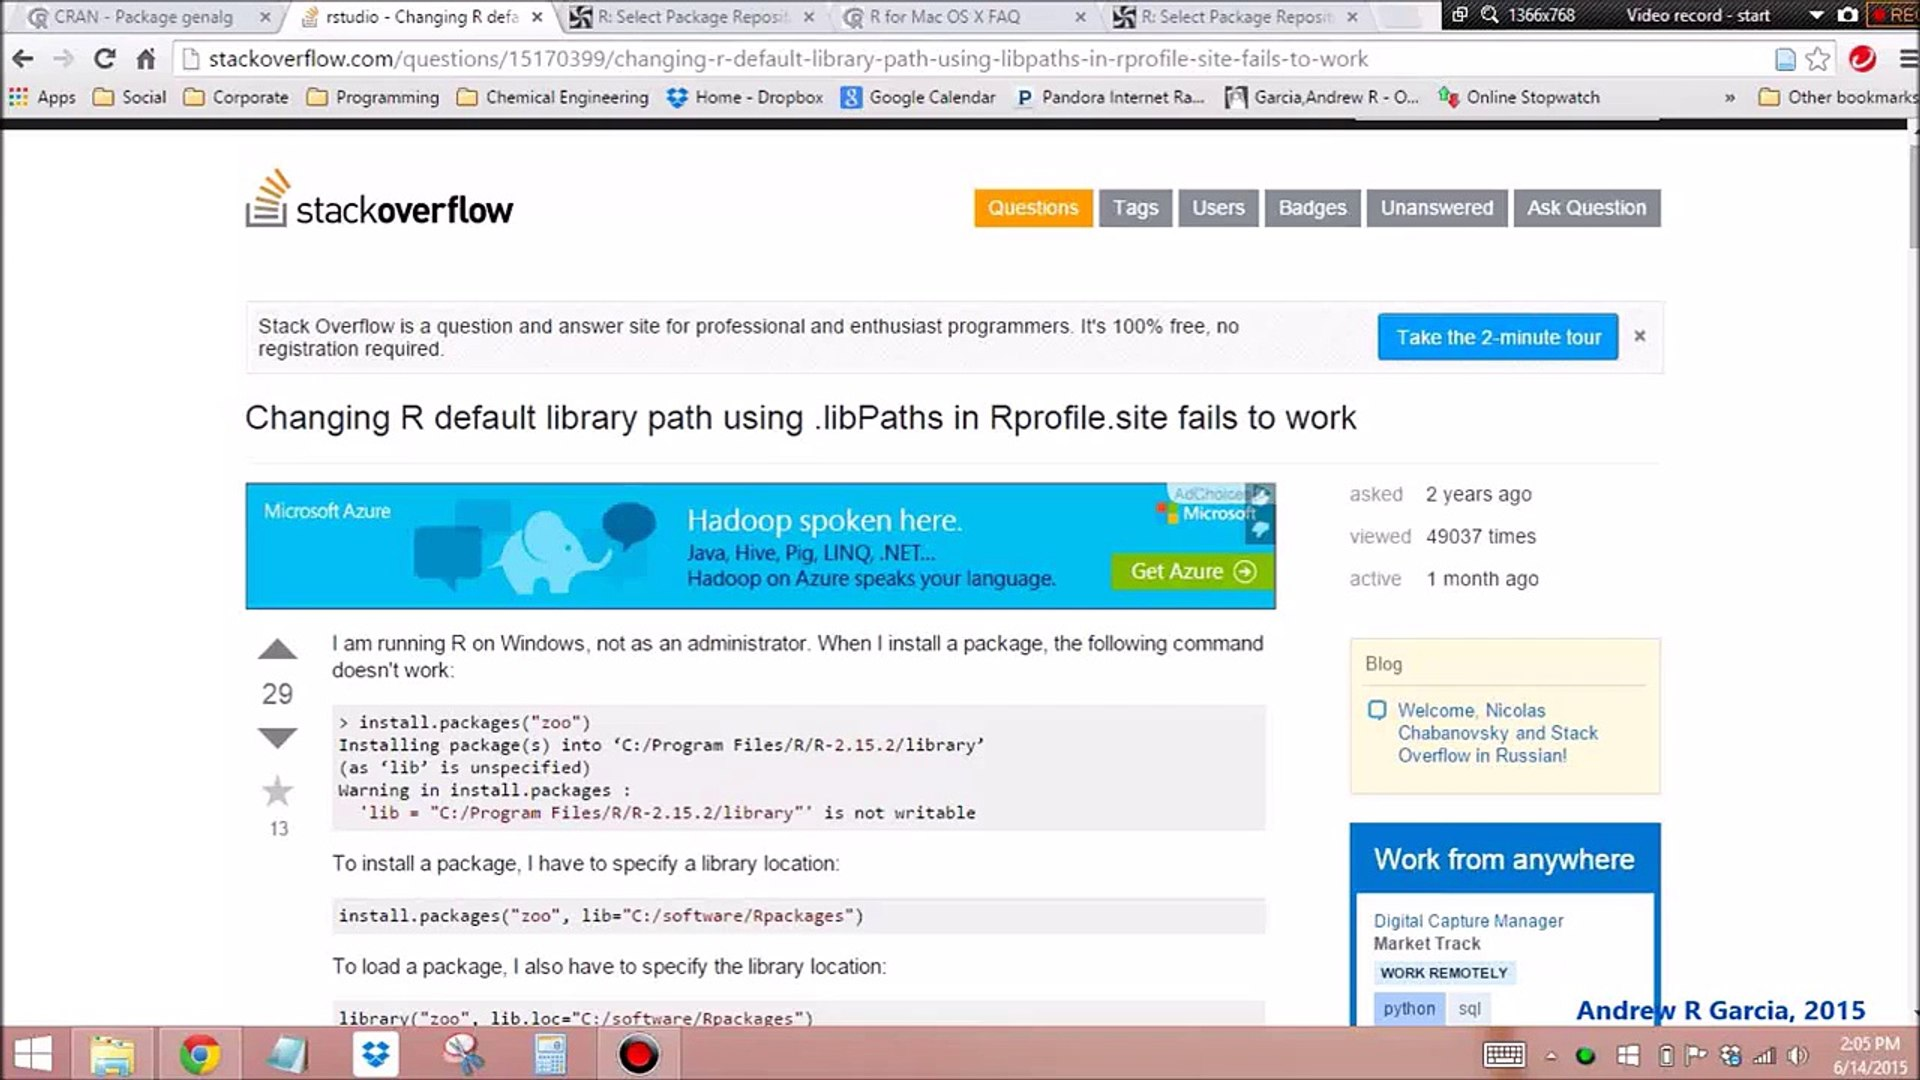 Installing Packages in RStudio: Install Path Problem Fix